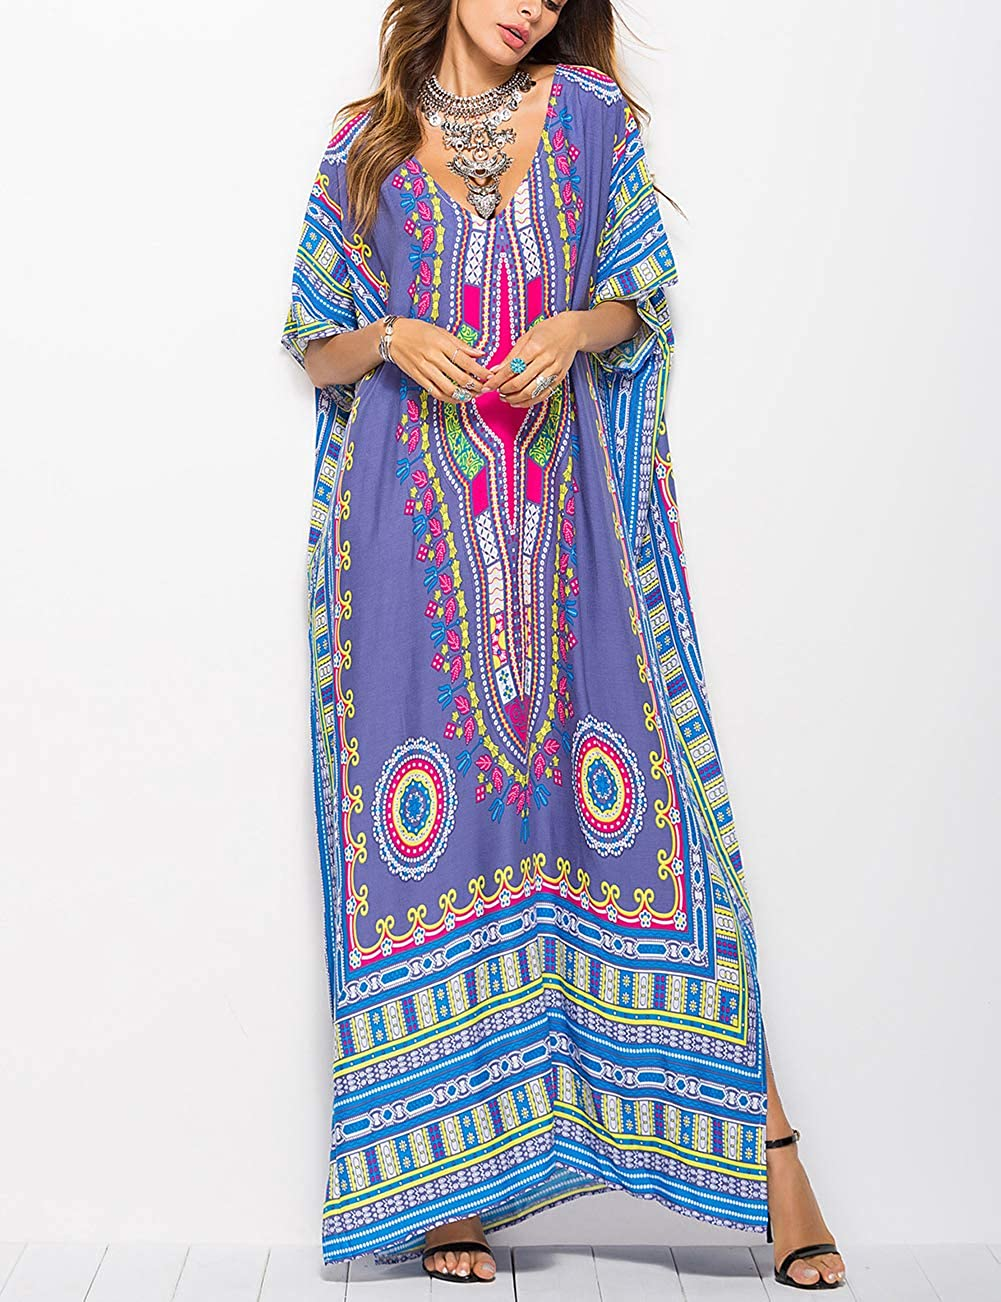 70s Outfits – 70s Style Ideas for Women Bsubseach Women Bathing Suits Cover Up Ethnic Print Kaftan Beach Maxi Dress $19.99 AT vintagedancer.com